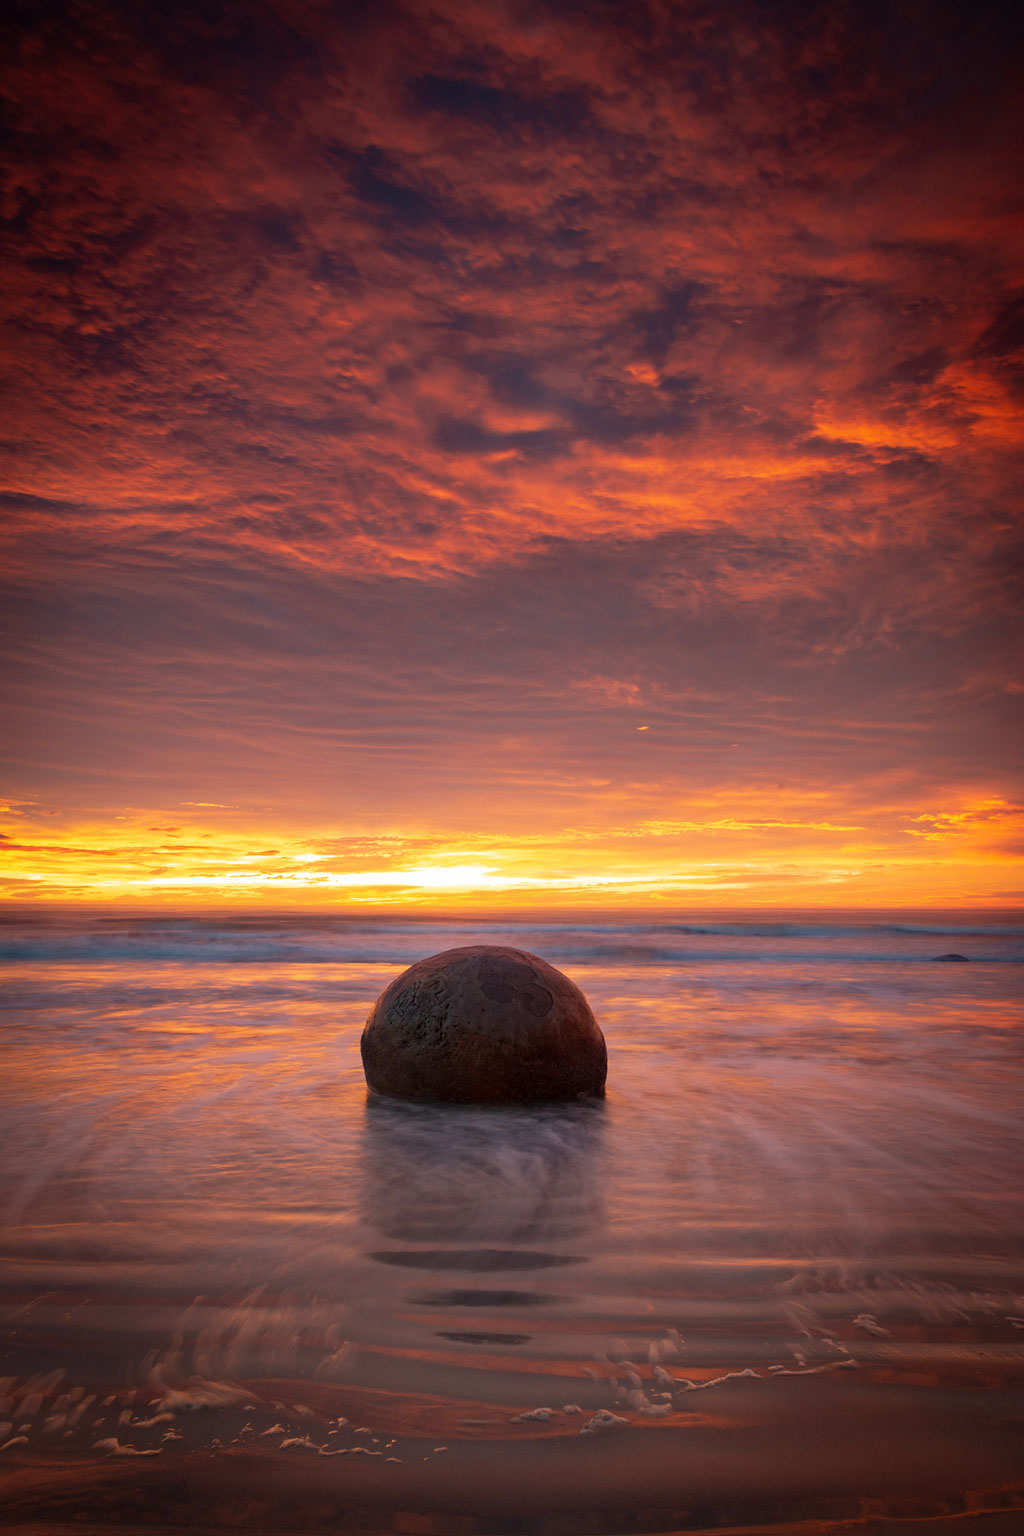 Moeraki Boulders at sunrise